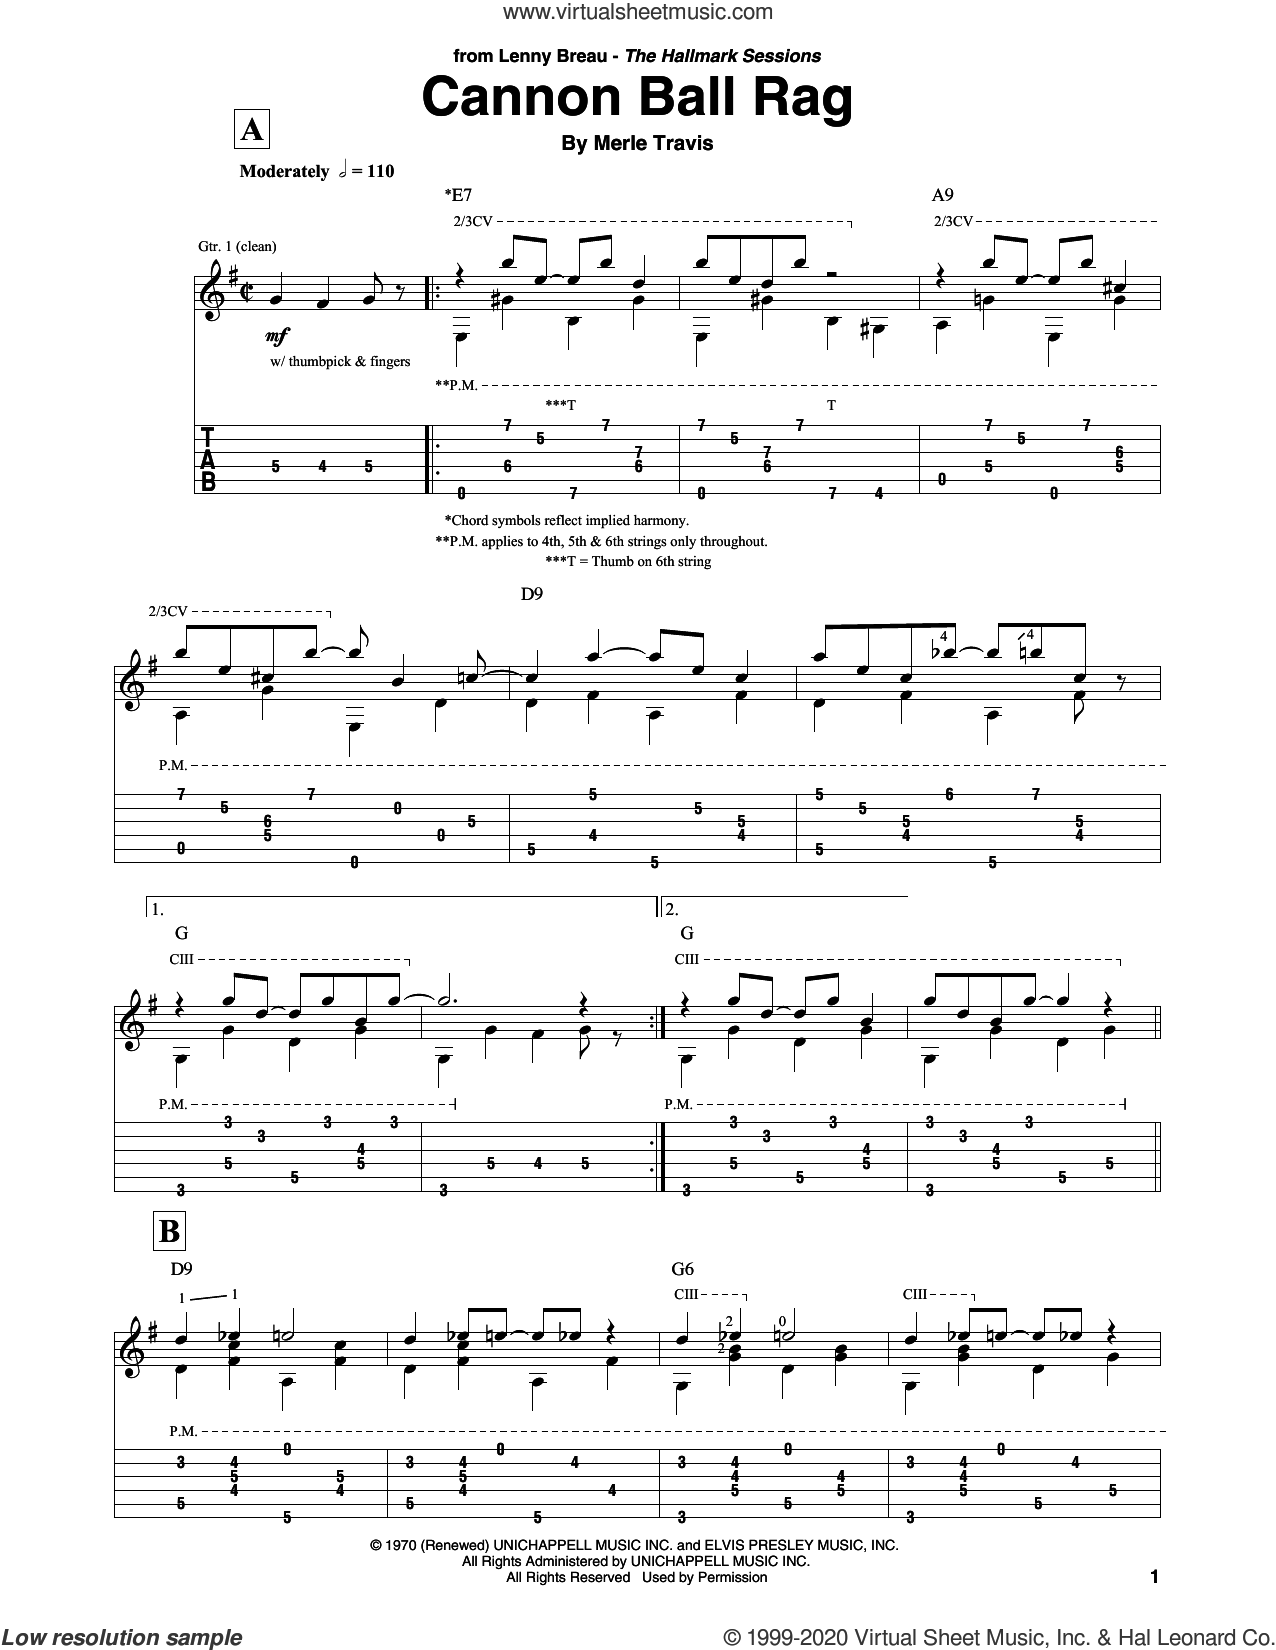 Cannon Ball Rag sheet music for guitar solo by Merle Travis, intermediate skill level